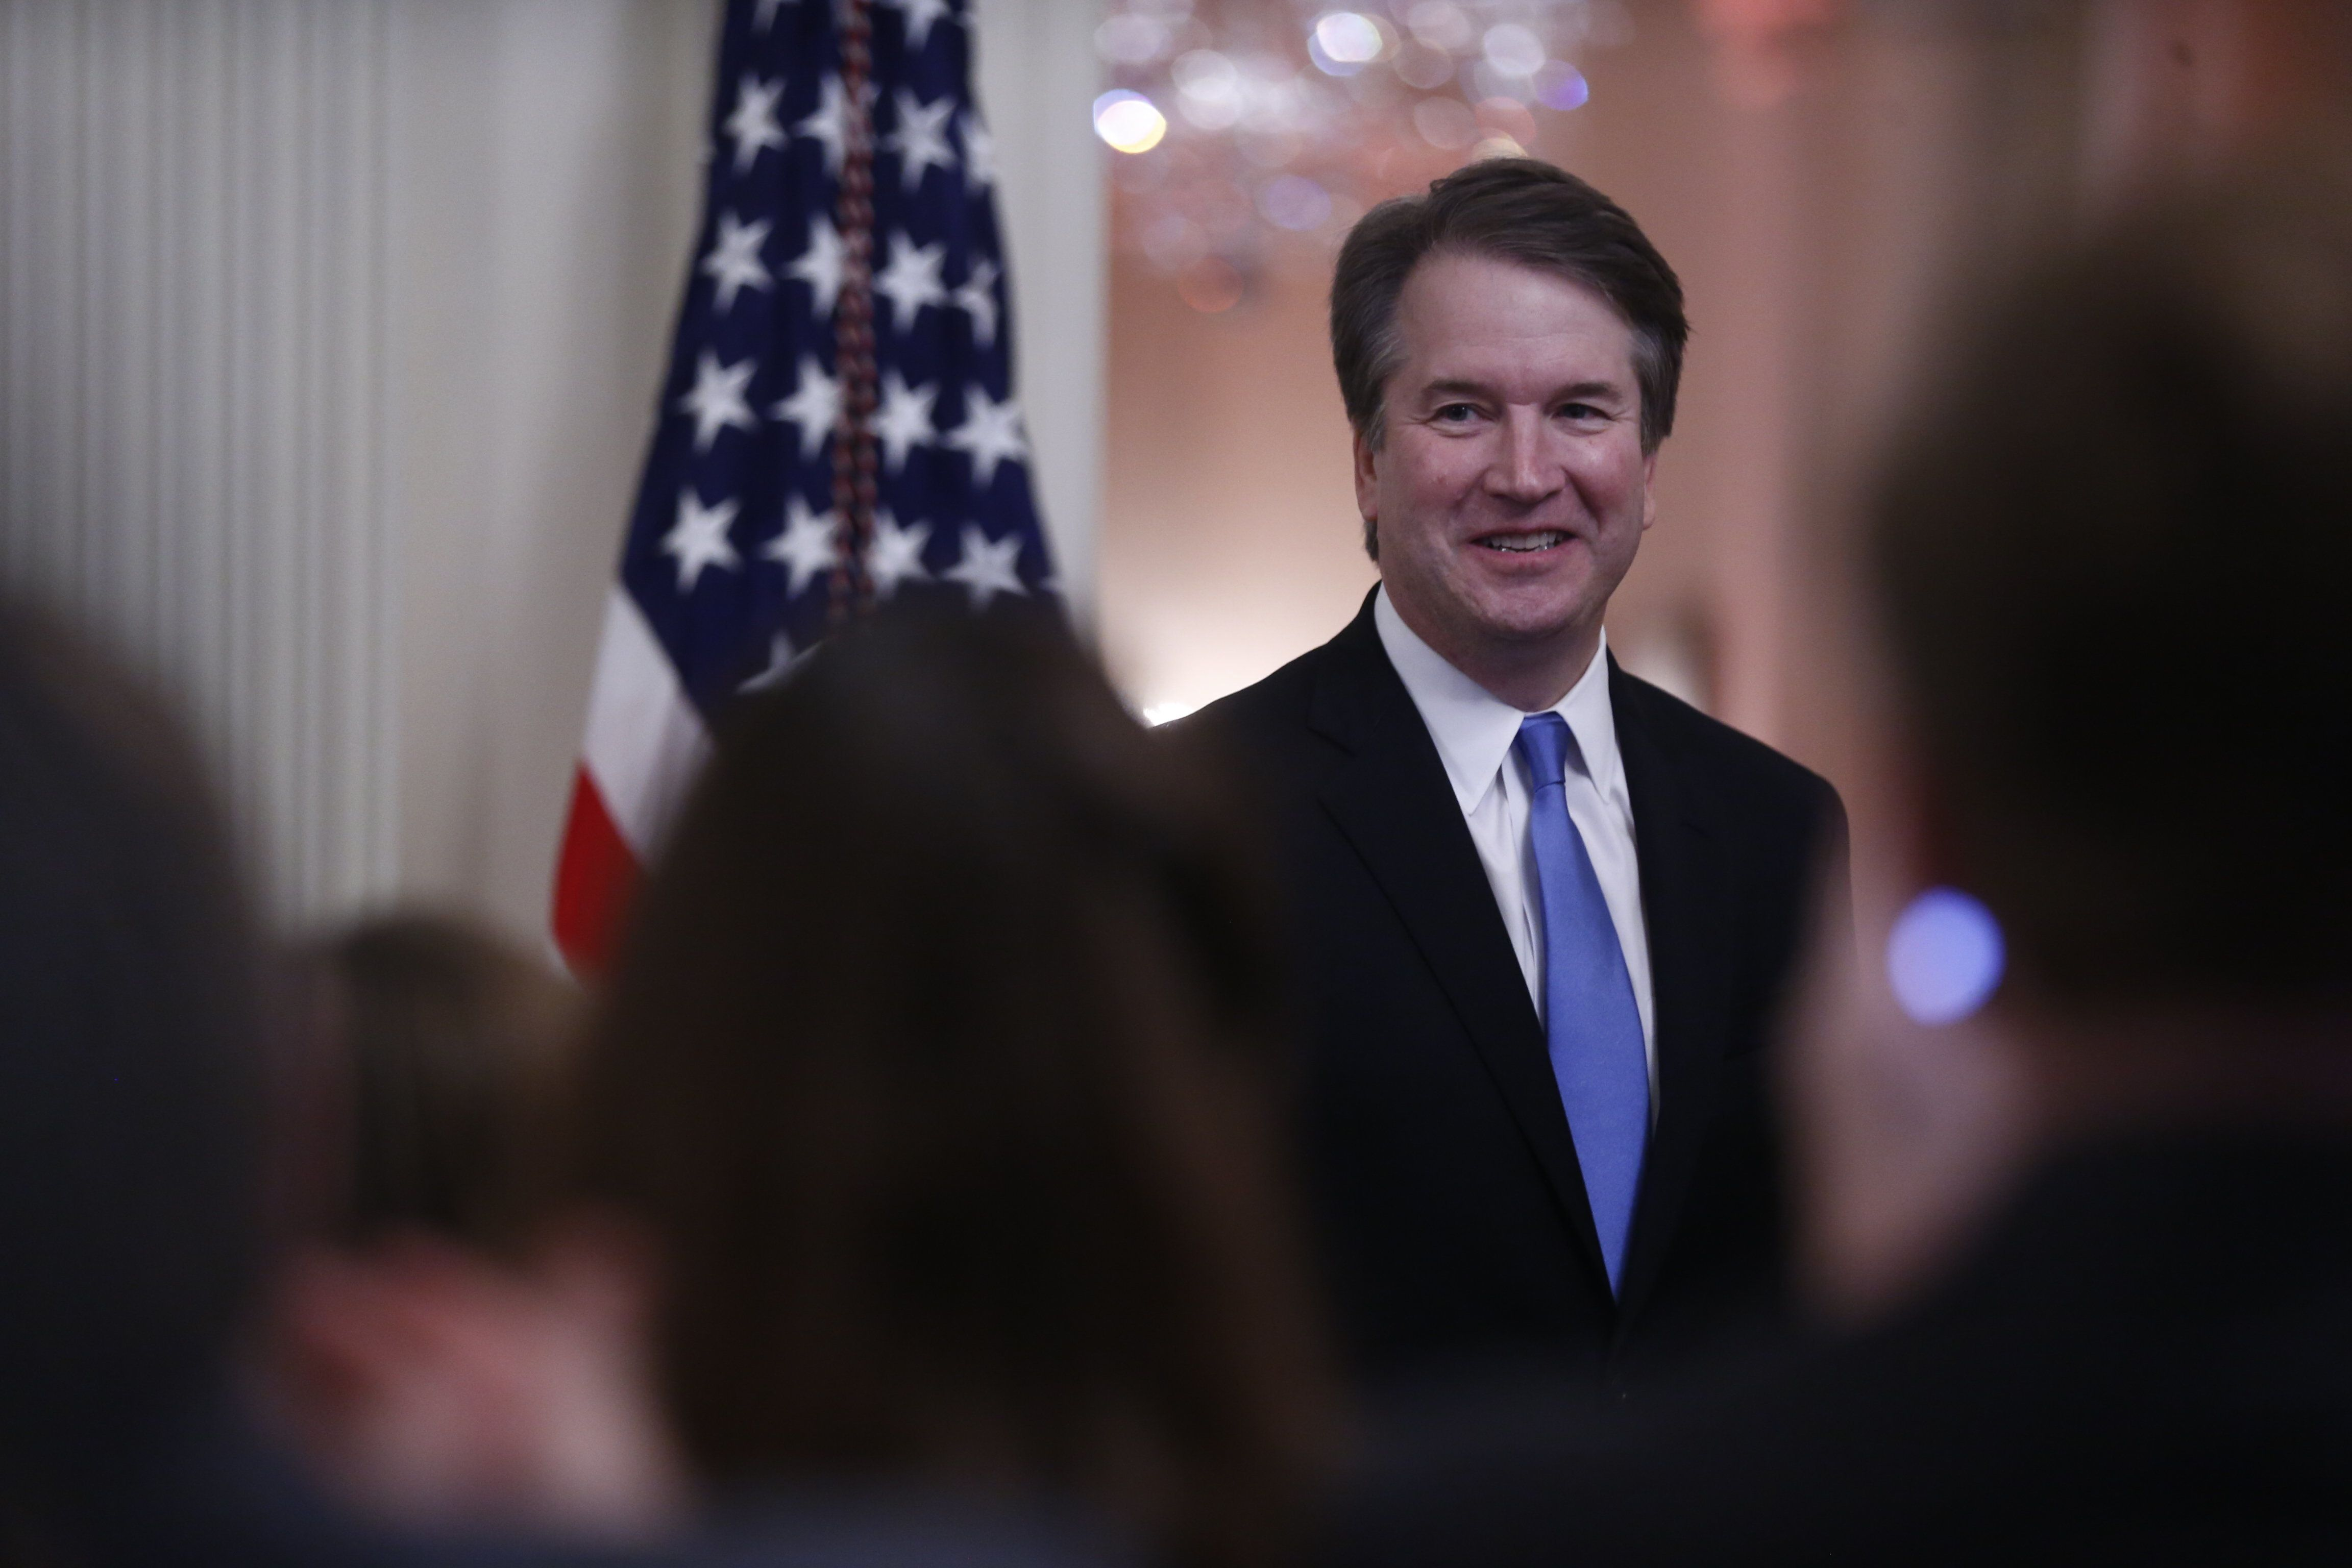 Brett Kavanaugh, associate justice of the U.S. Supreme Court, smiles as U.S. President Donald Trump, not pictured, speaks during a ceremonial swearing-in event in the East Room of the White House in Washington, D.C., U.S., on Monday, Oct. 8, 2018. After surviving one of the most contentious confirmation battles in American history, Kavanaugh faces the challenge of defining himself on the top court and winning the trust of his eight new colleagues. Photographer: Andrew Harrer/Bloomberg via Getty Images